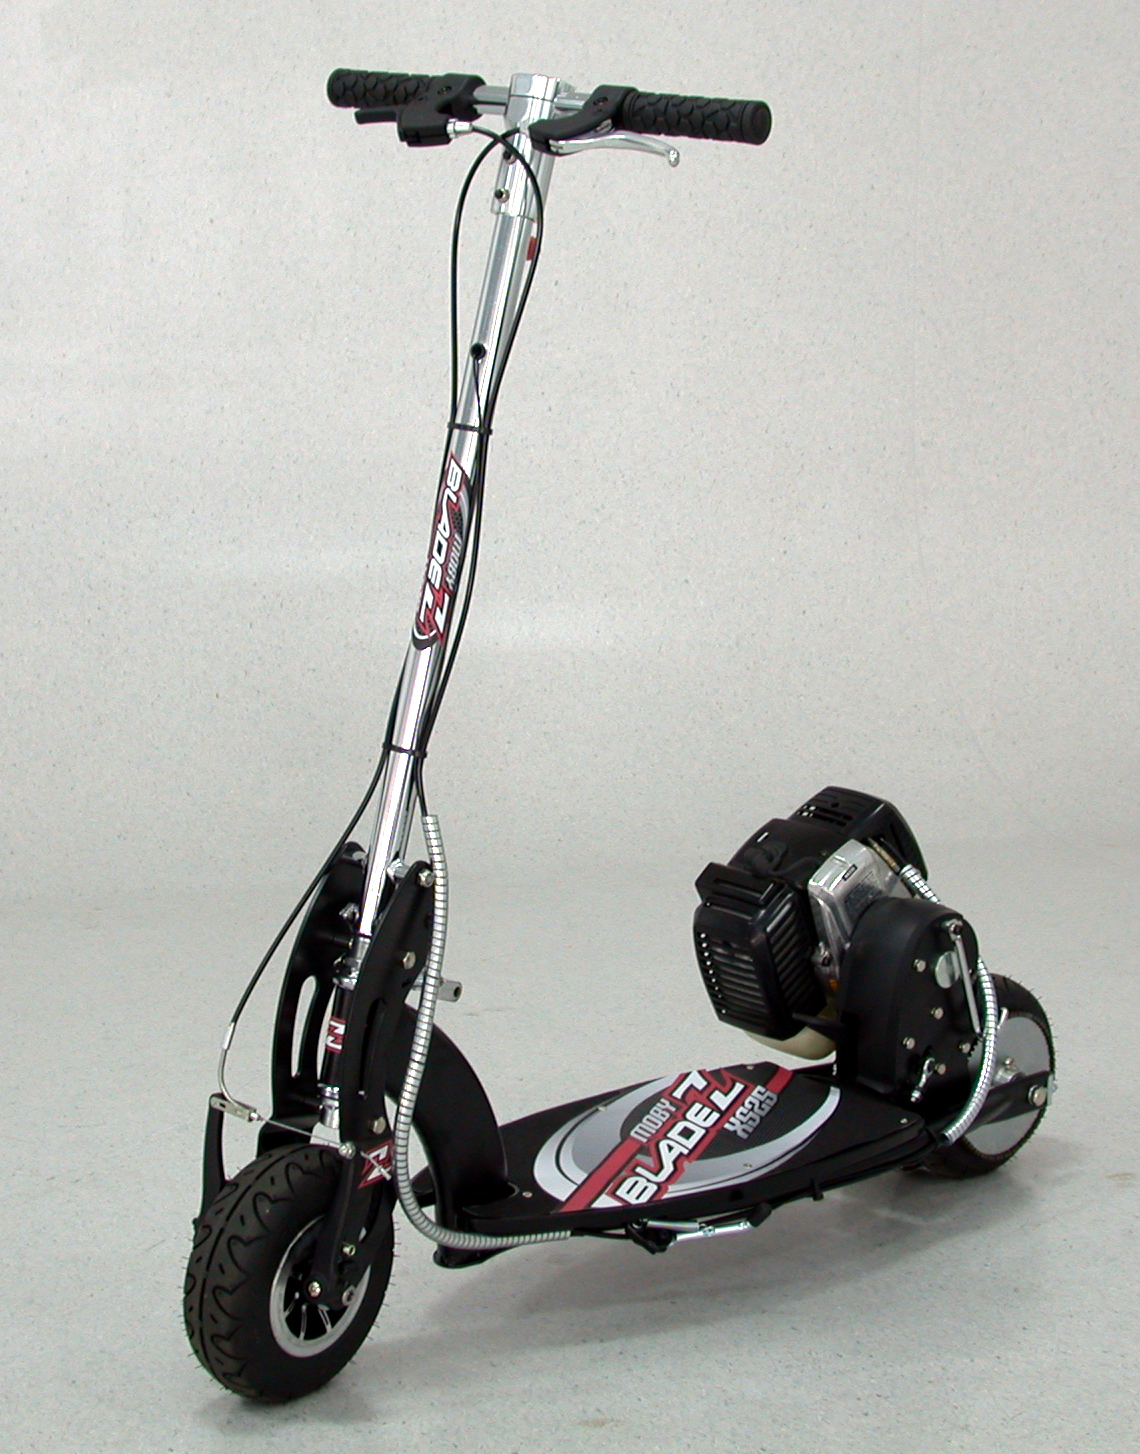 motorized scooter bladez motor scooter schwinn electric scooter wiring diagram images of bladez motor scooter jonway 150 scooter manual